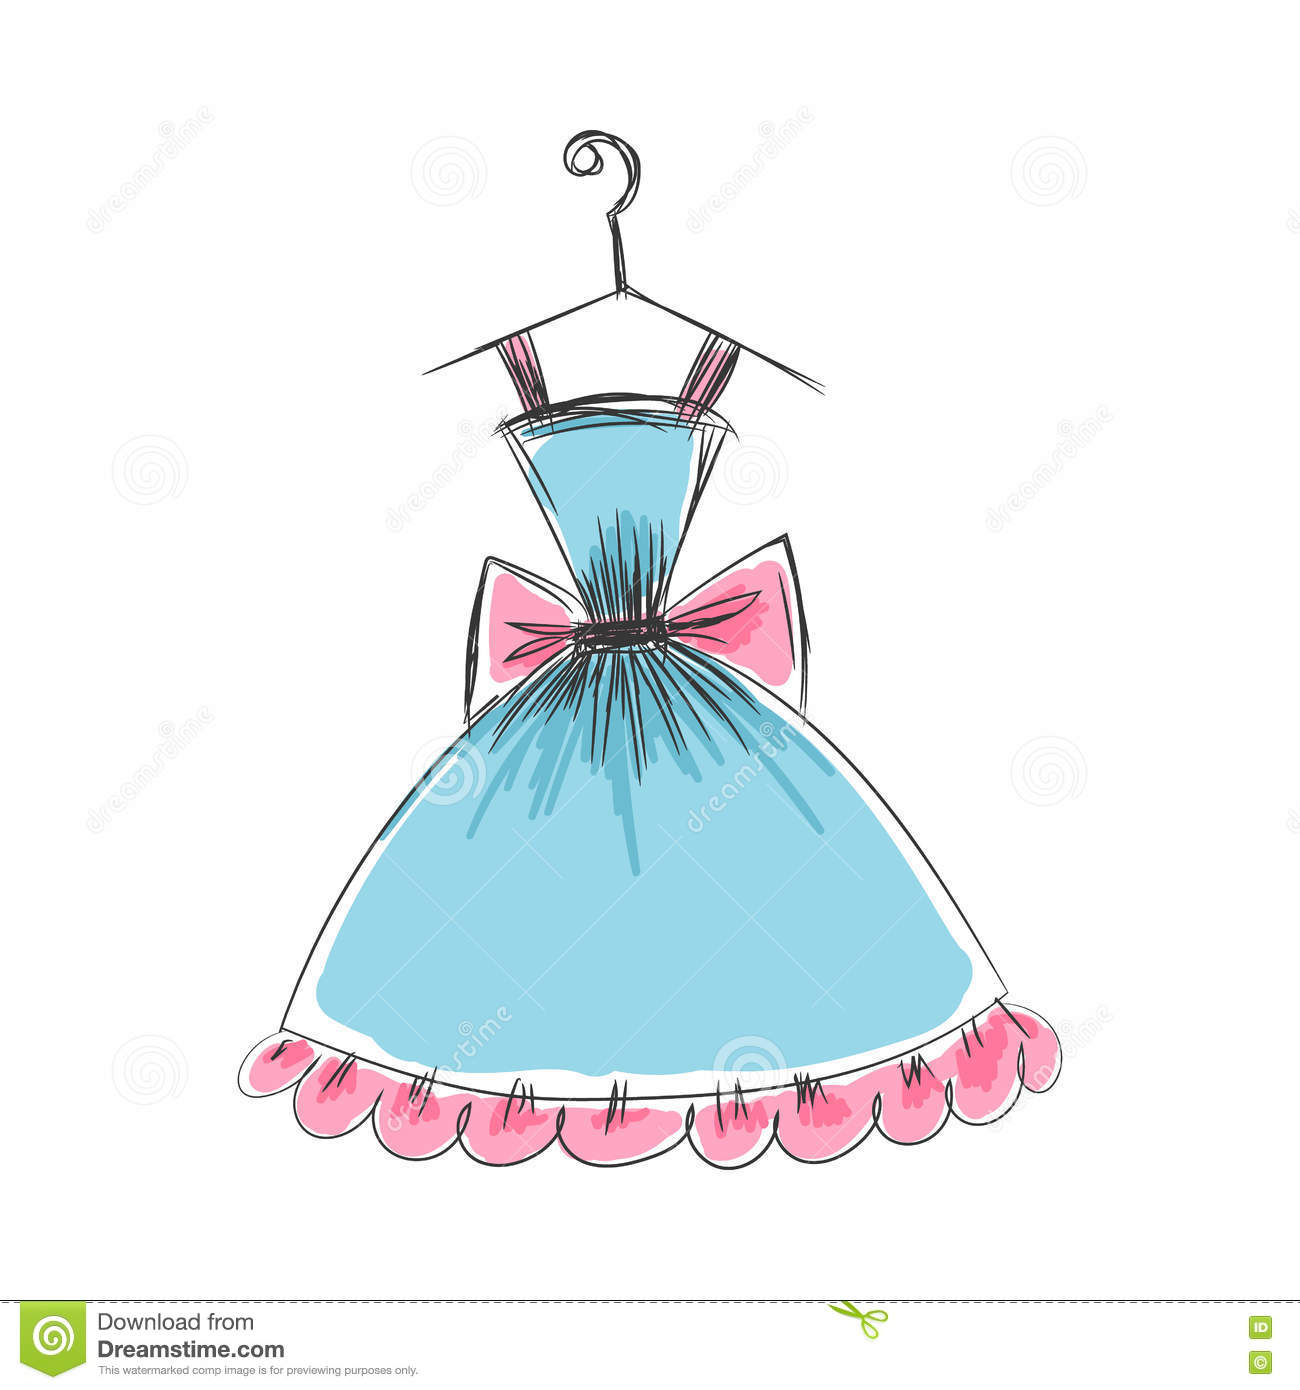 Ball Gown Hand Drawing On A Hanger Stock Vector - Illustration of ...